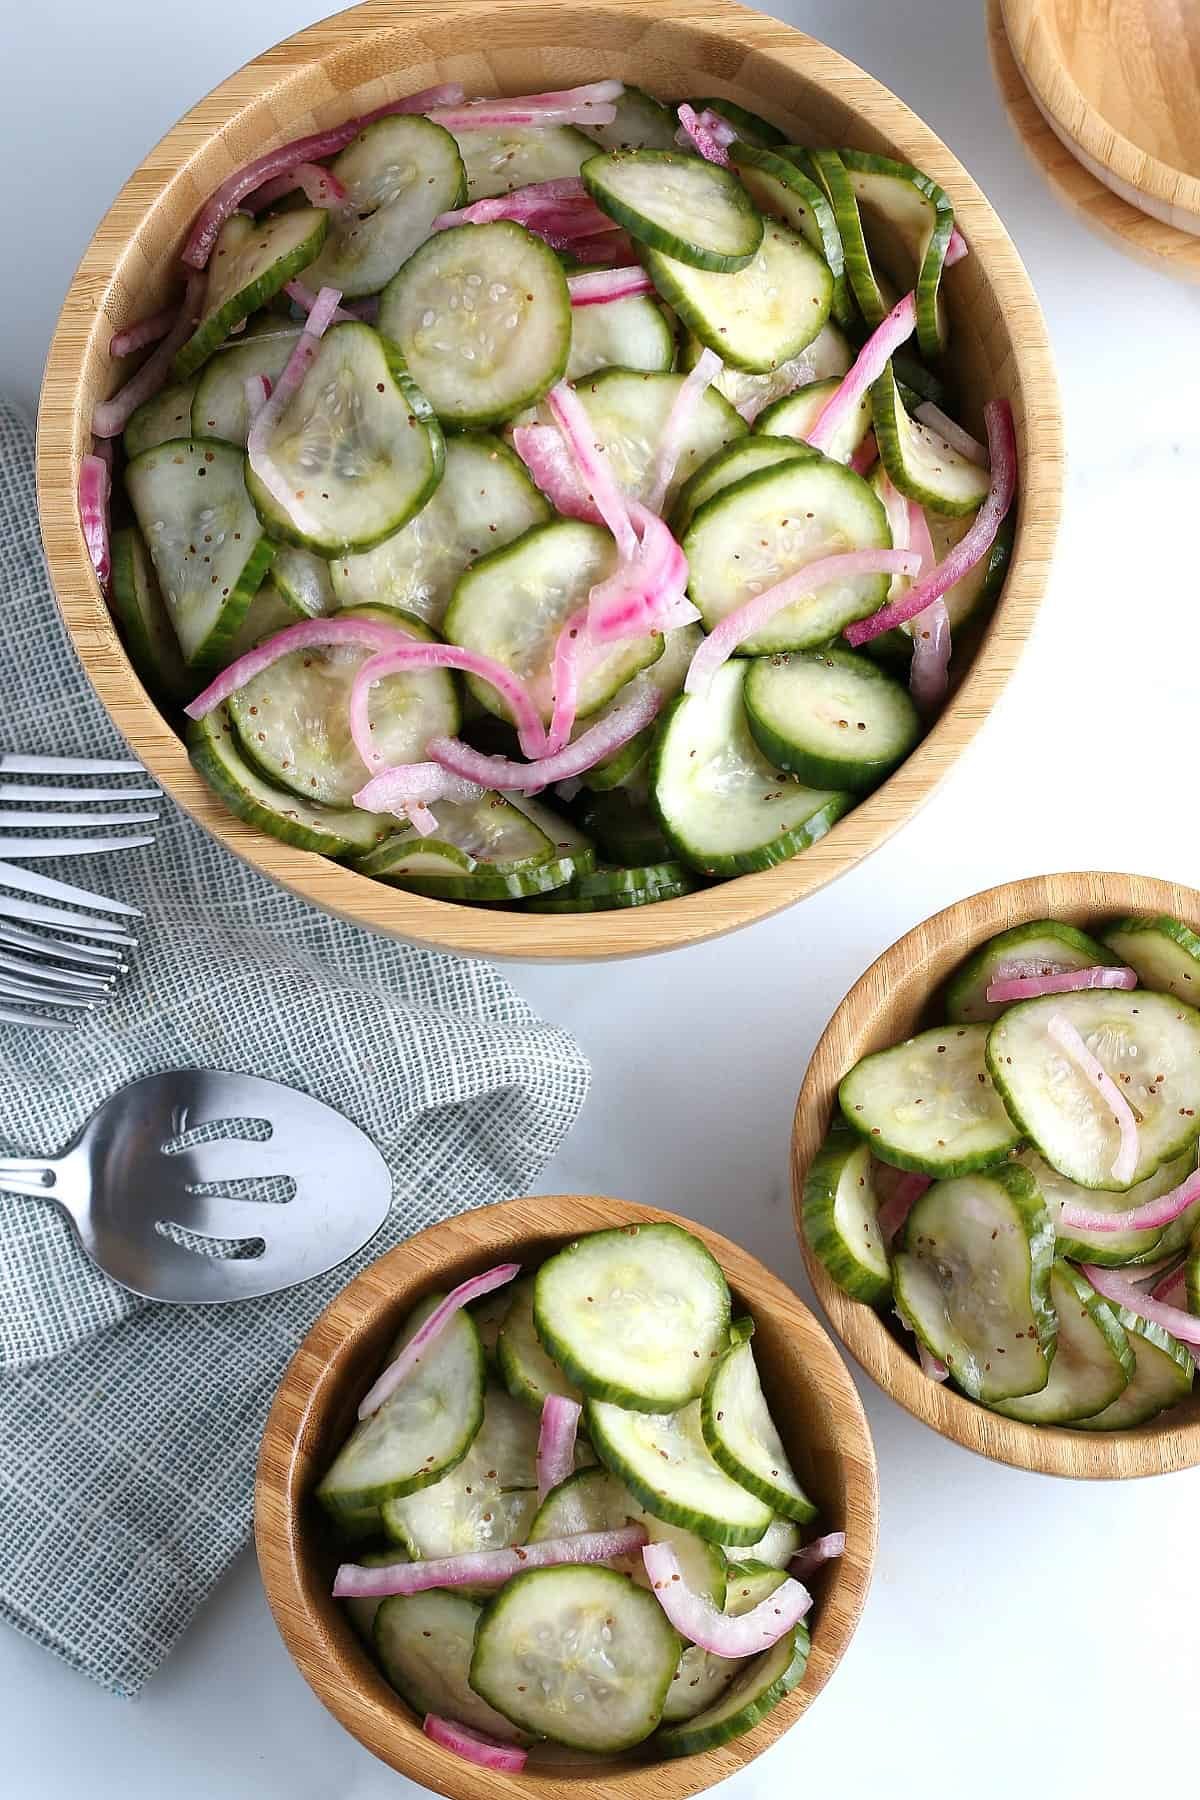 Overhead view of the large serving bowl and two smaller individual bowls full of cucumber vinegar salad with forks and a slotted spoon on the left.